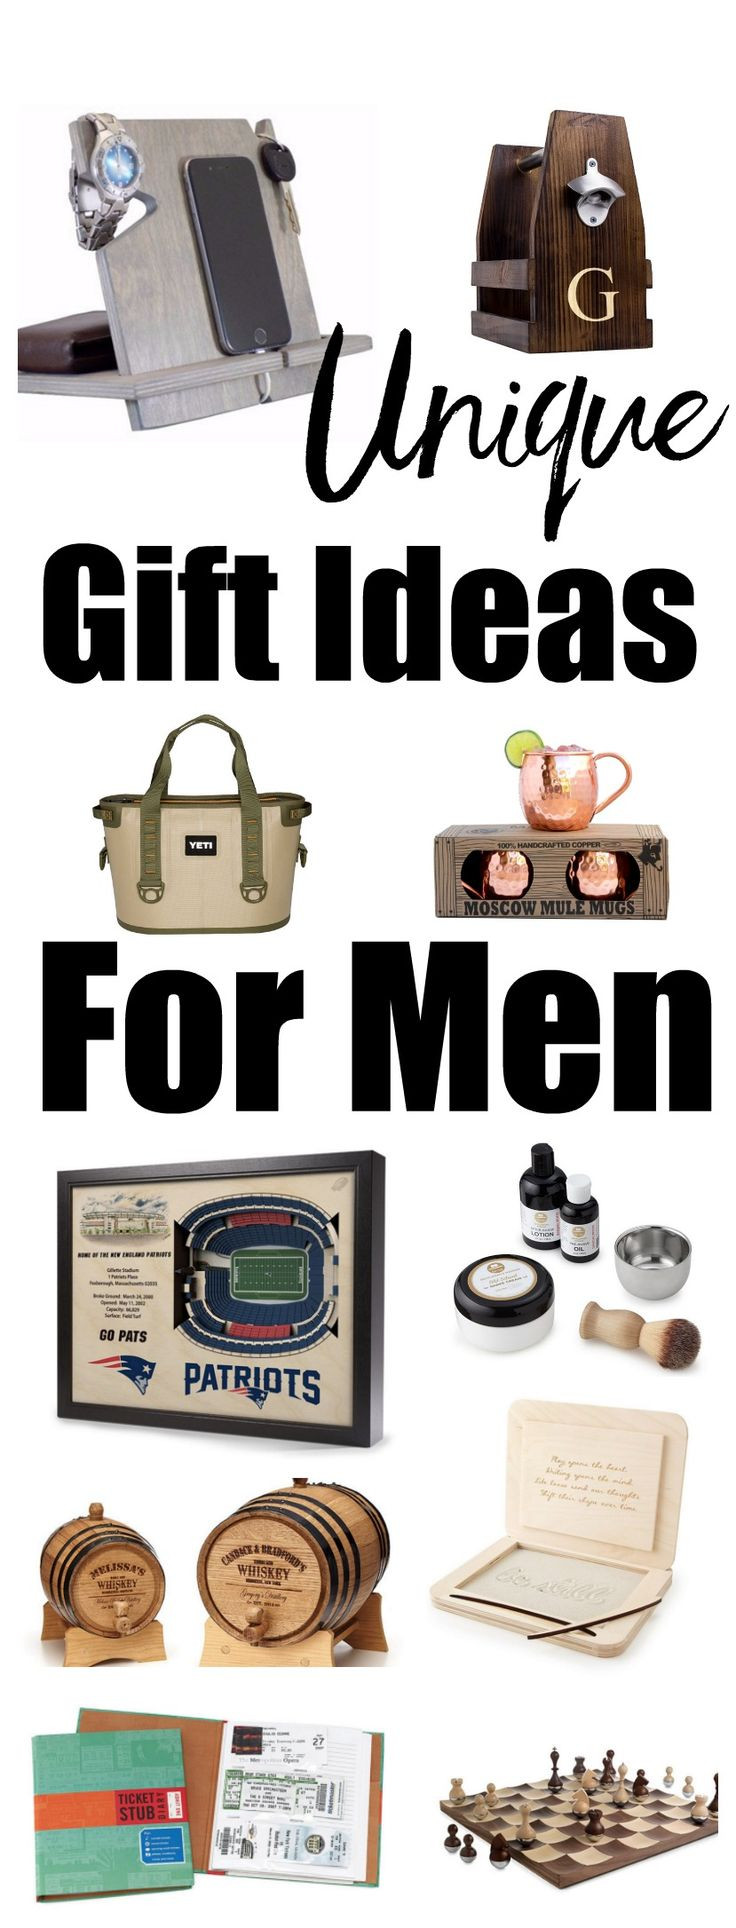 Best ideas about Unique Birthday Gift Ideas . Save or Pin Unique Gift Ideas for Men Christmas t ideas for men Now.